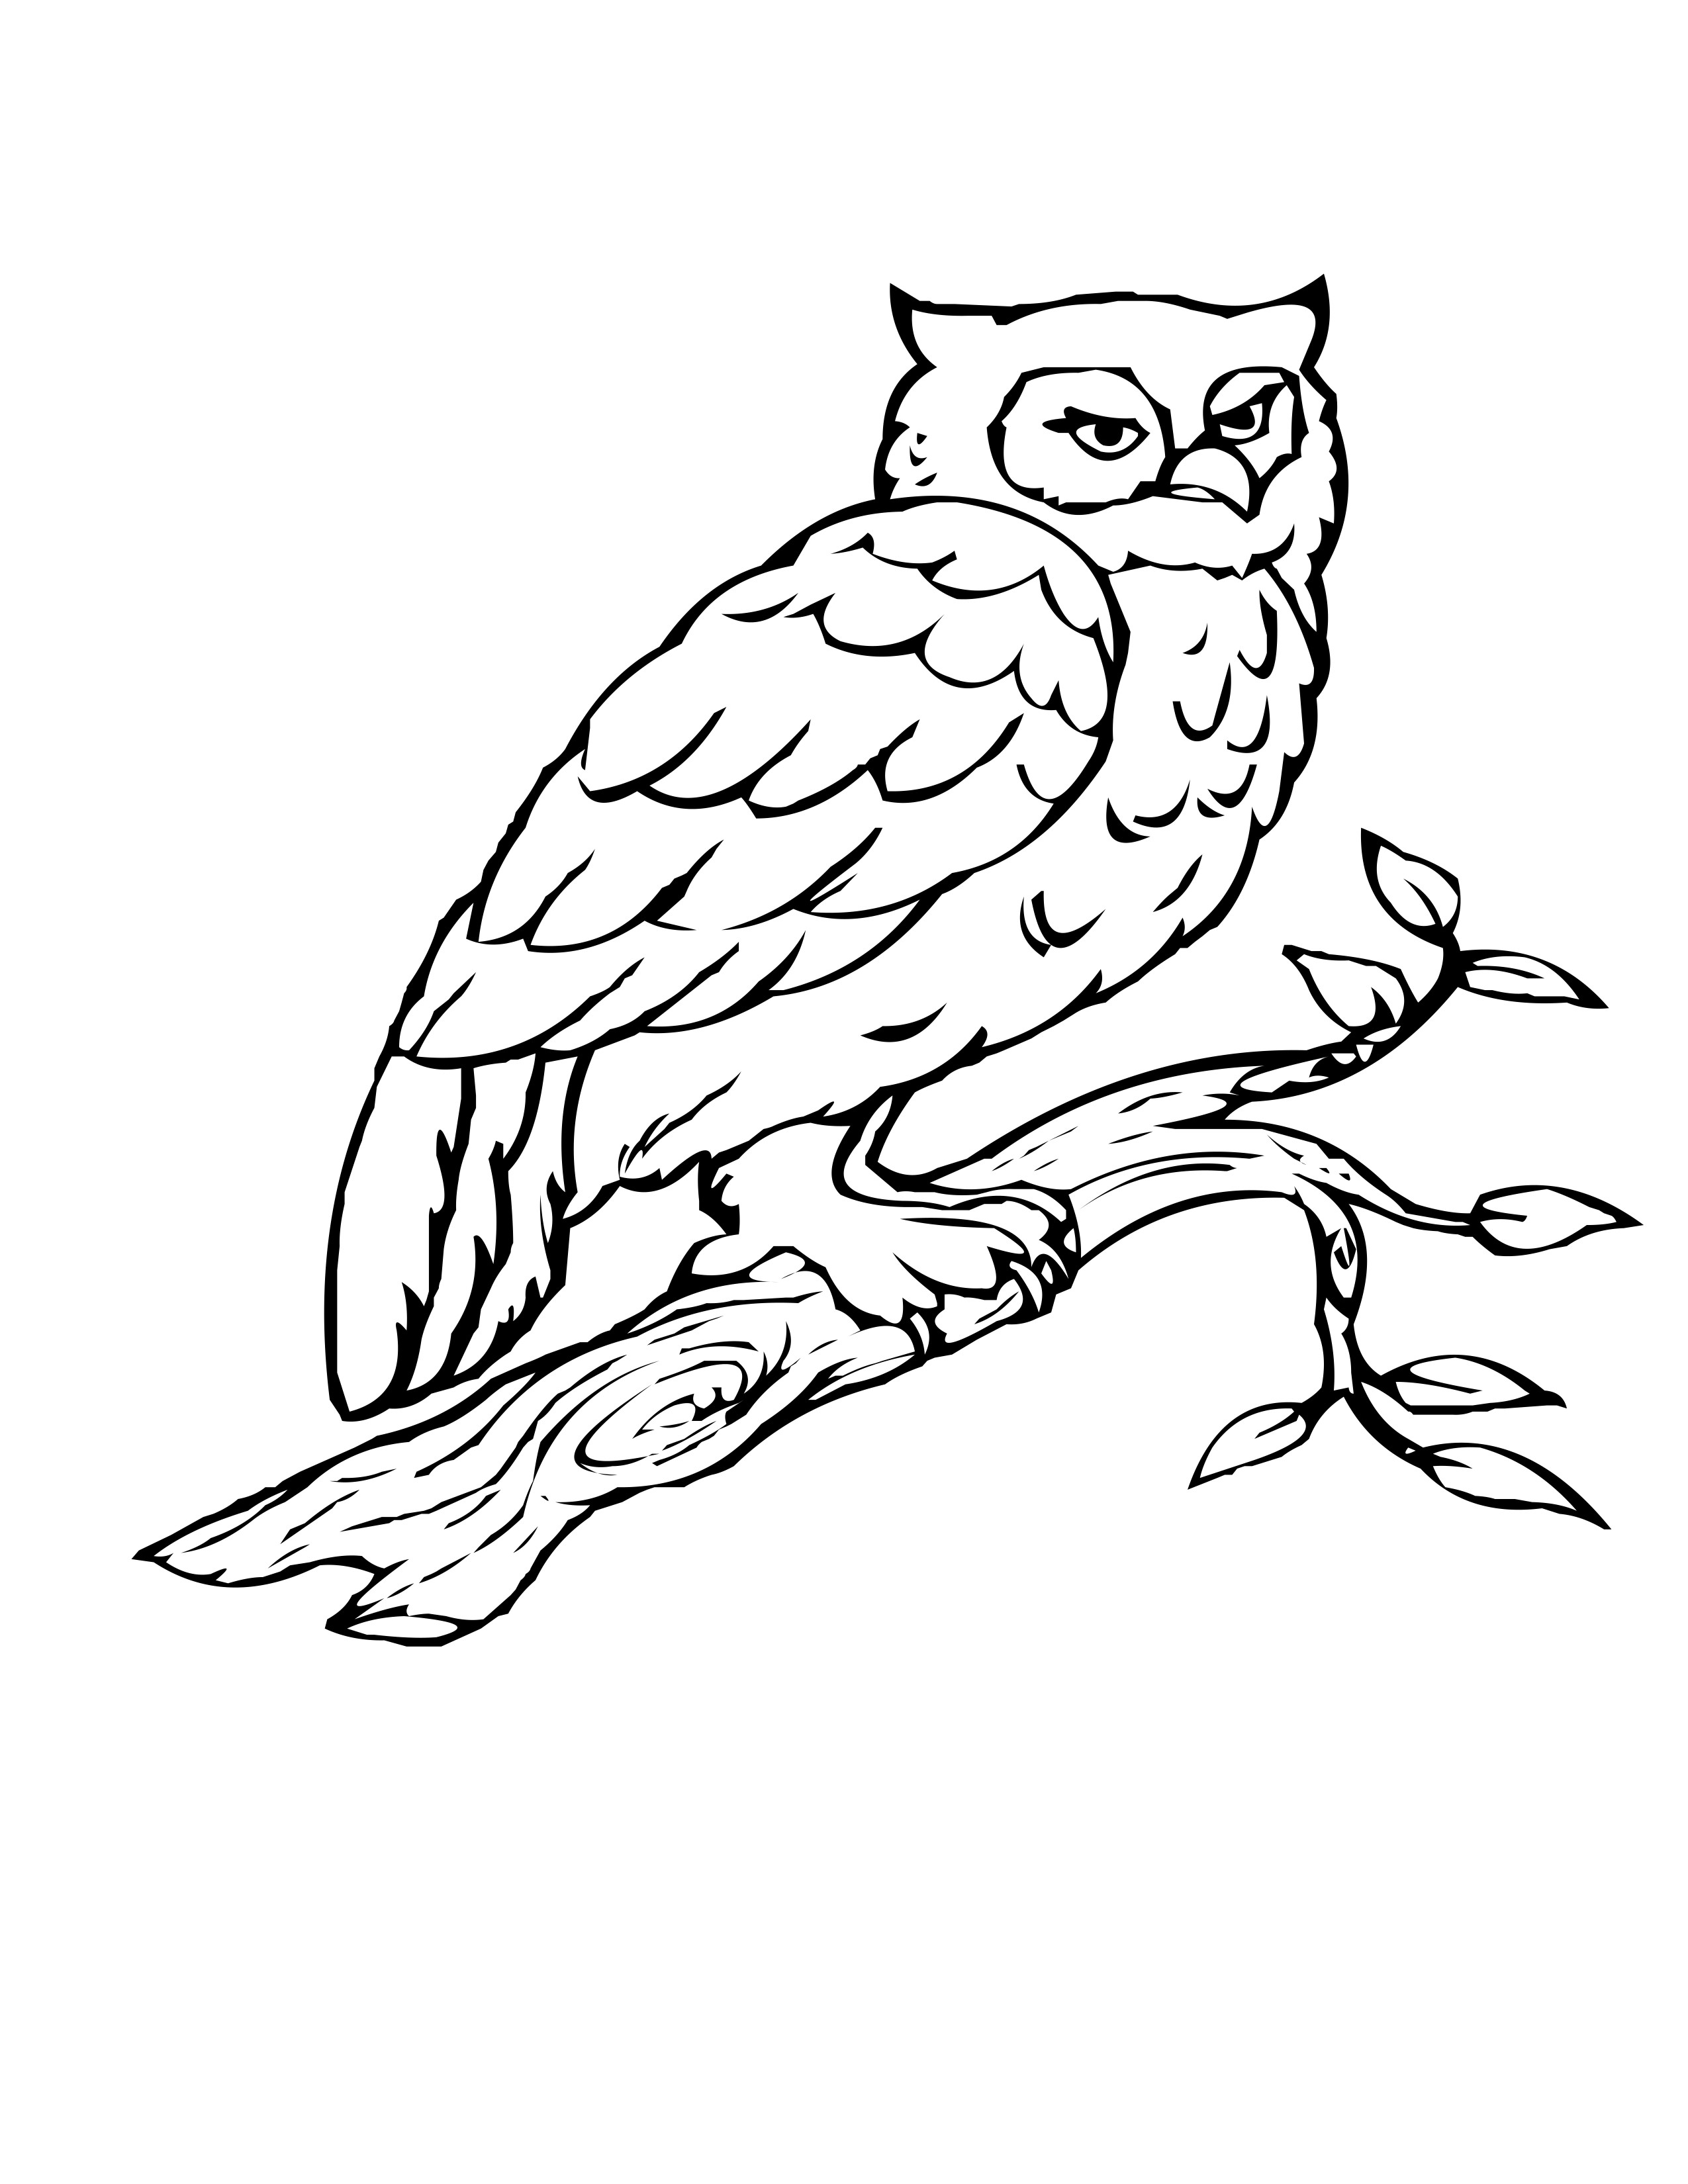 branch coloring page apple blossom branch coloring page free printable page coloring branch